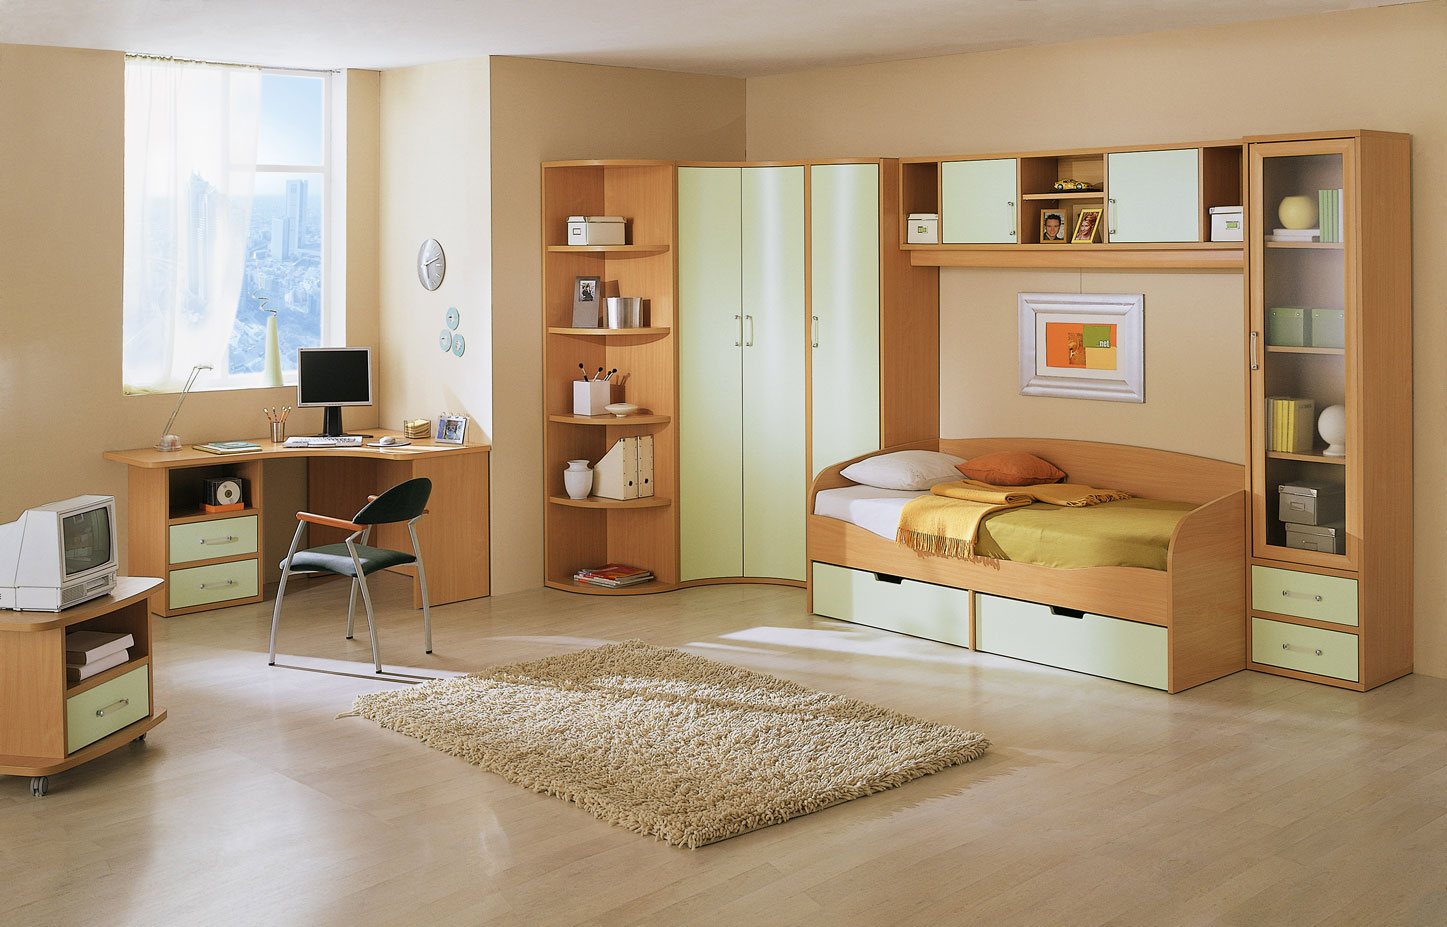 Kid 39 s rooms from russian maker akossta for Interior design for kid bedroom